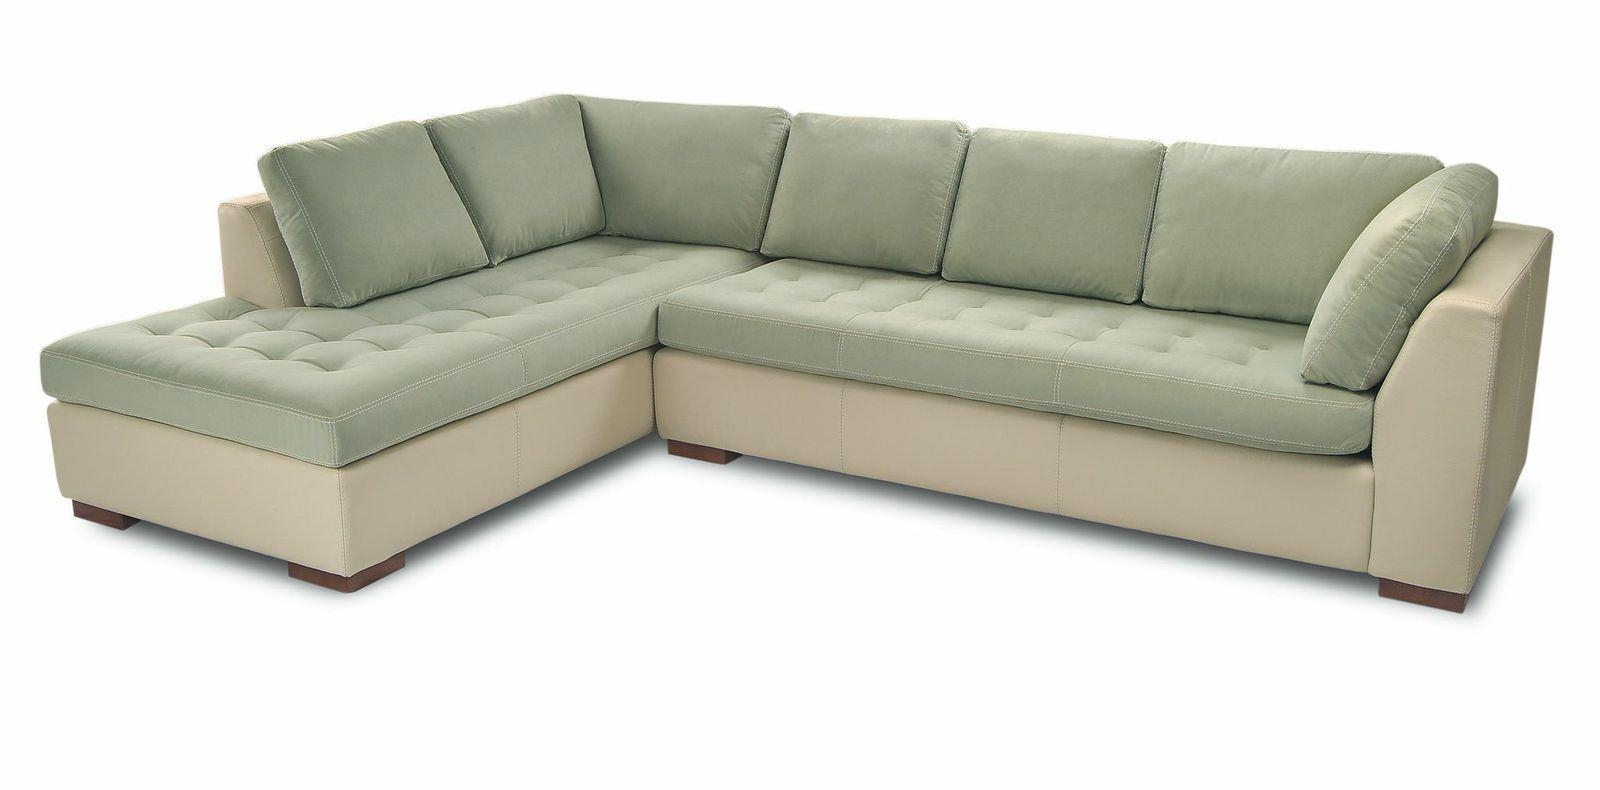 ▻ Sofa : 37 Lovely Sofa Covers For Sectionals Patio Furniture In Cat Proof Sofas (View 8 of 20)